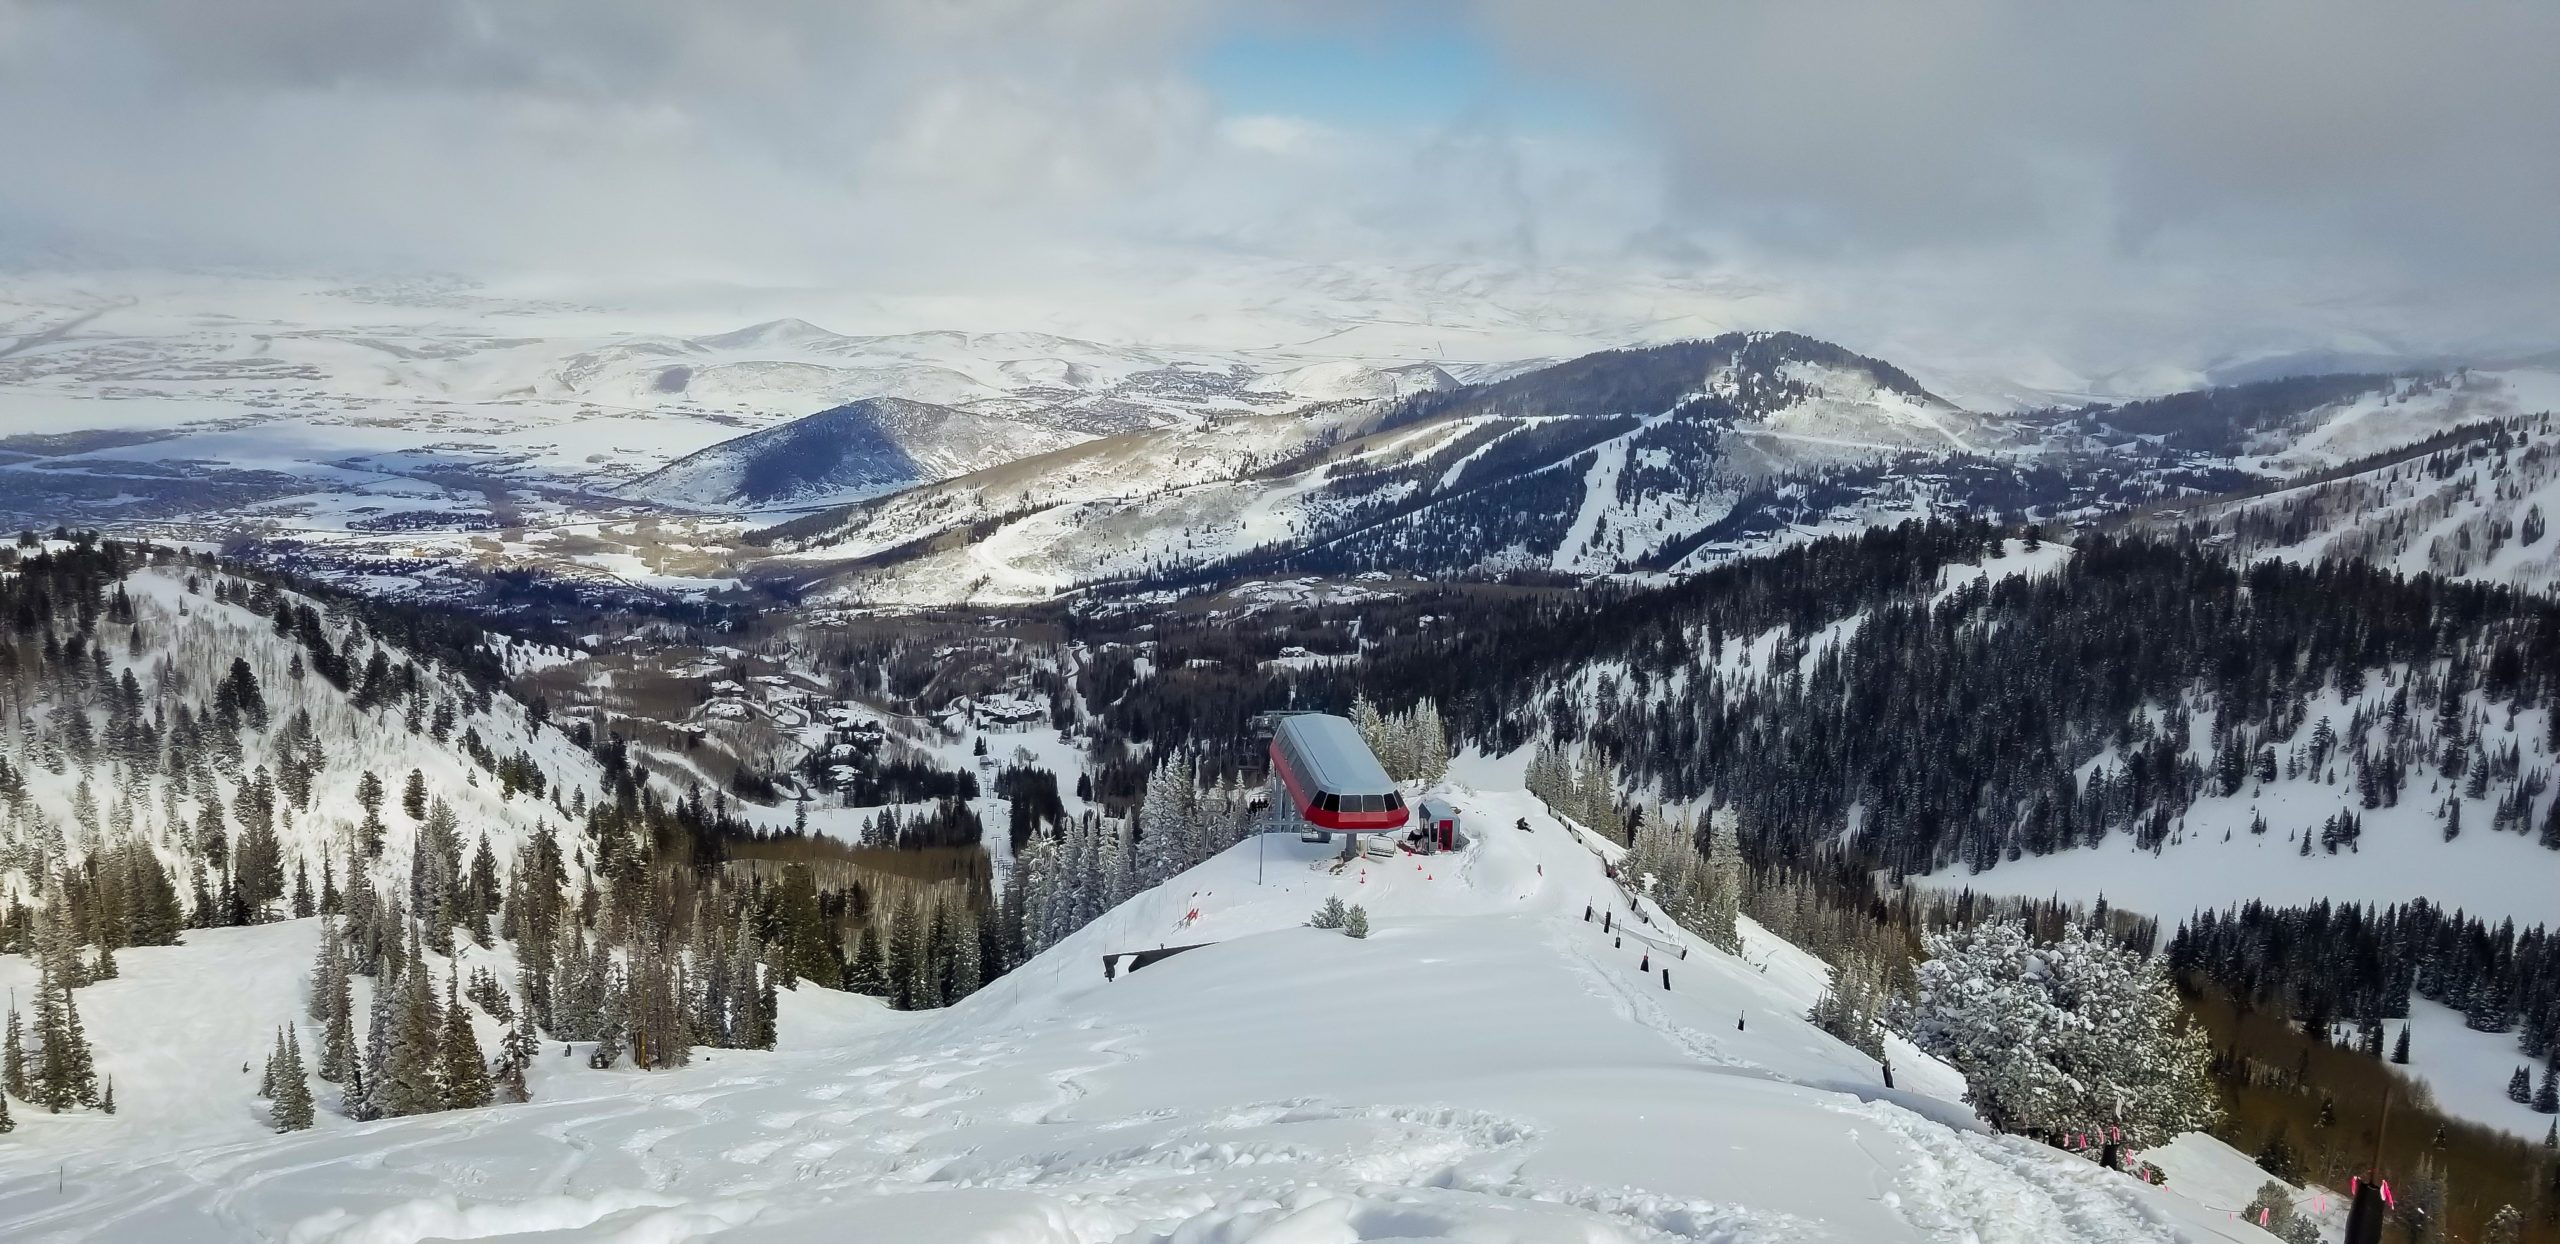 Airbnb Rentals in Park City